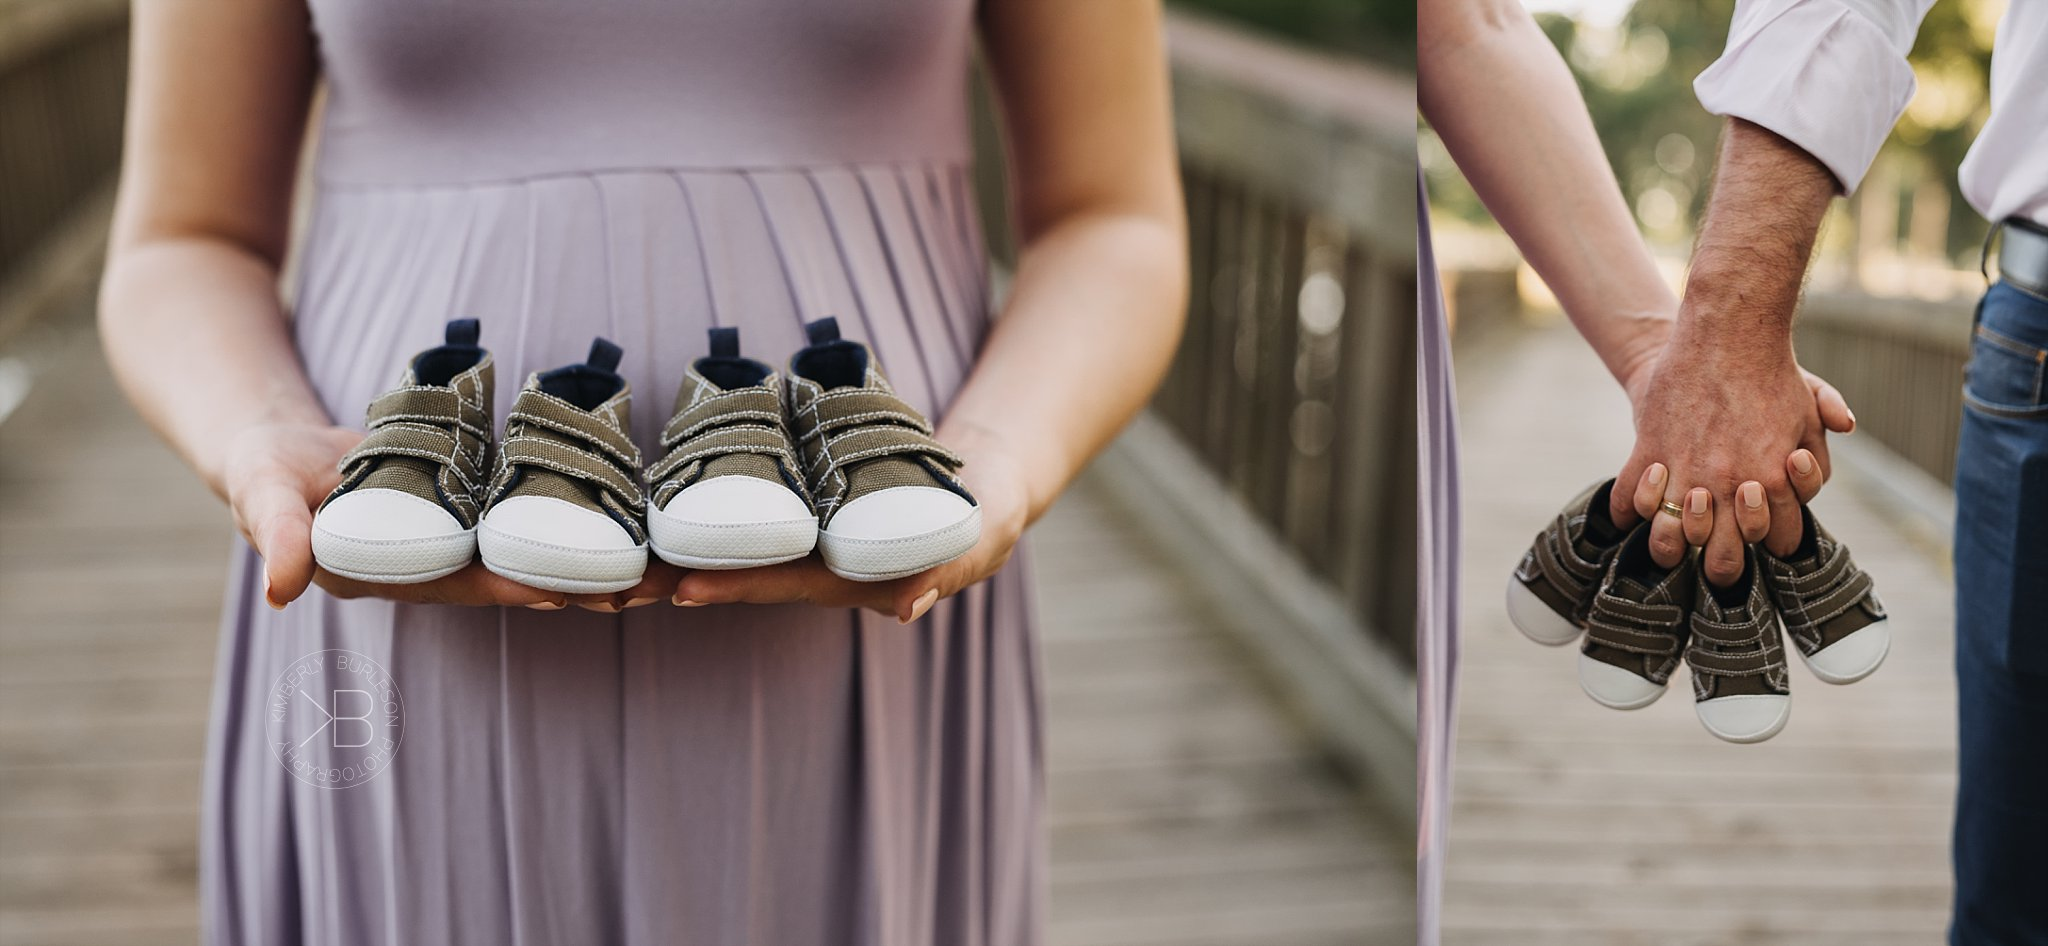 twins maternity session holding shoes